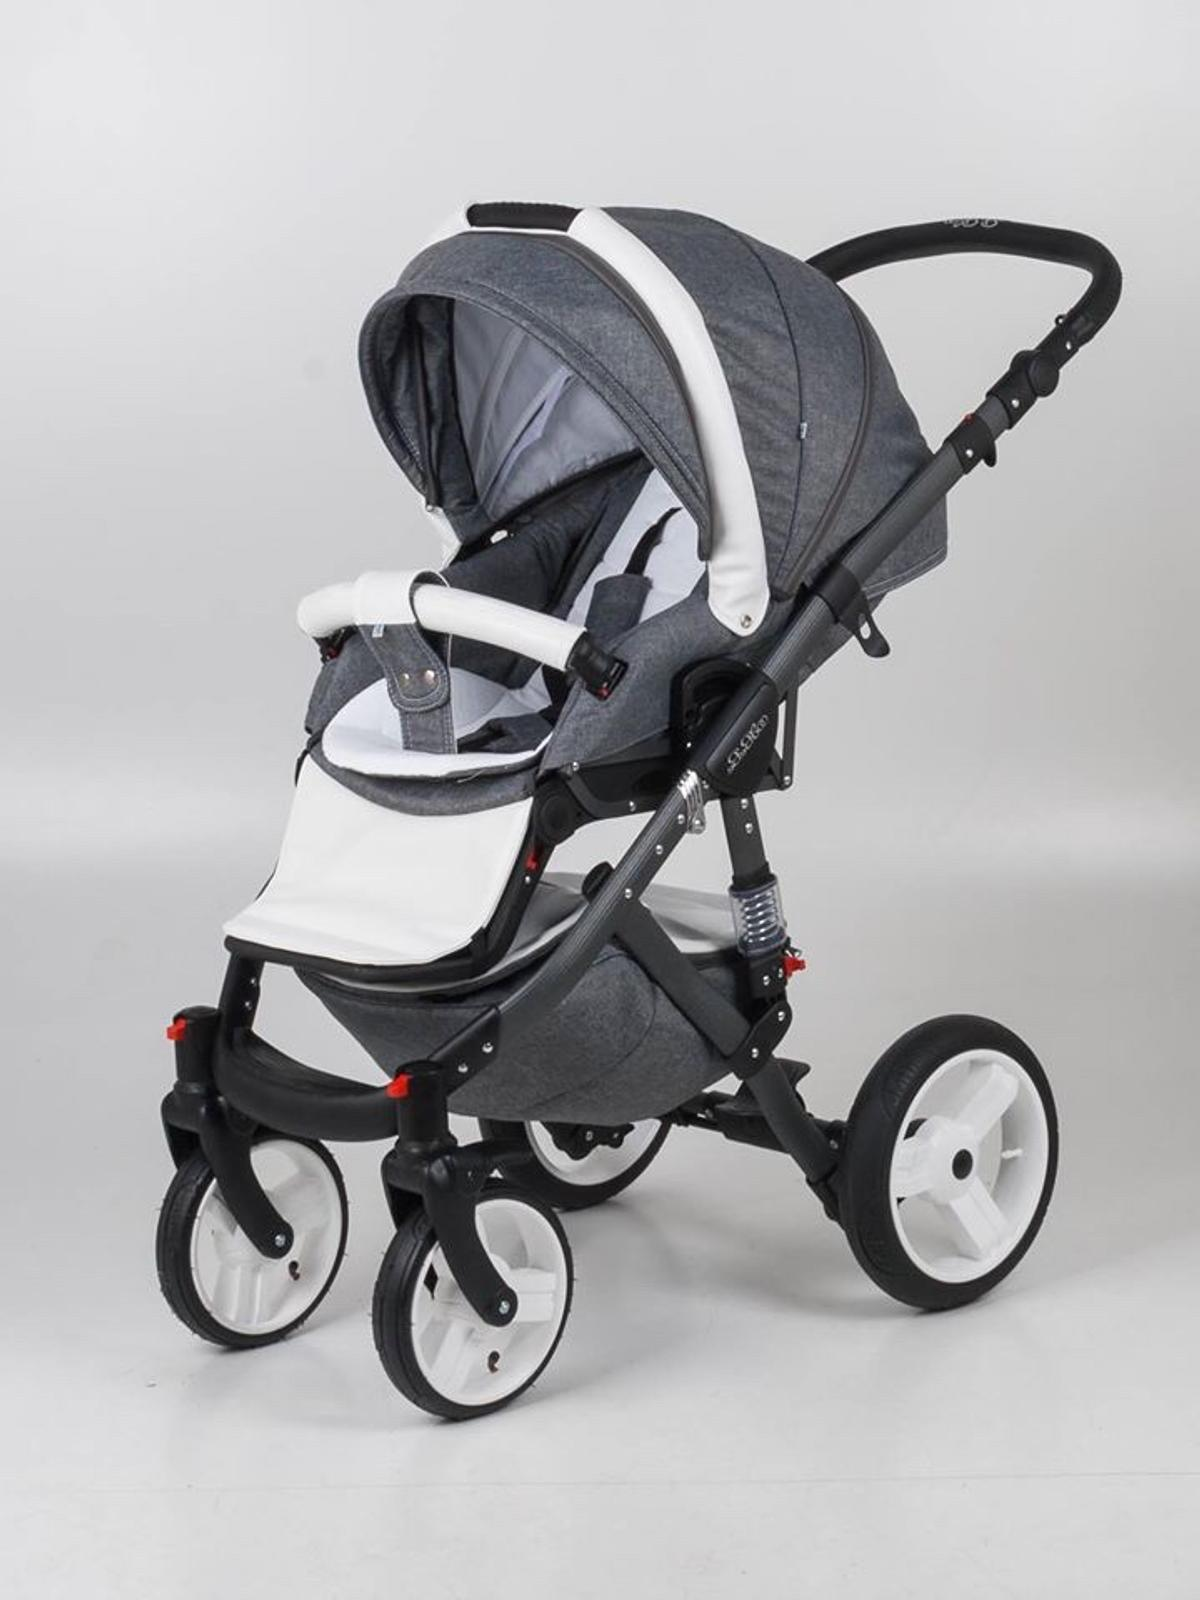 1 x Grey Alu Chassis 1 x Seat Unit (Inc: Hood and Apron + Bumper Bar) Carry cot Car Seat including the adapters Pram Bag Parasol Footmuff Rain cover not the original one had to get a replacement. Also Includes Broderie Anglise footmuff with grey ribbon that cost £80 and the matching one for car seat. Also includes spare wheels. Has been professional cleaned Small marks on changing bag and a few scratches on chassis but nothing noticeable. Will deliver if in Liverpool/Merseyside